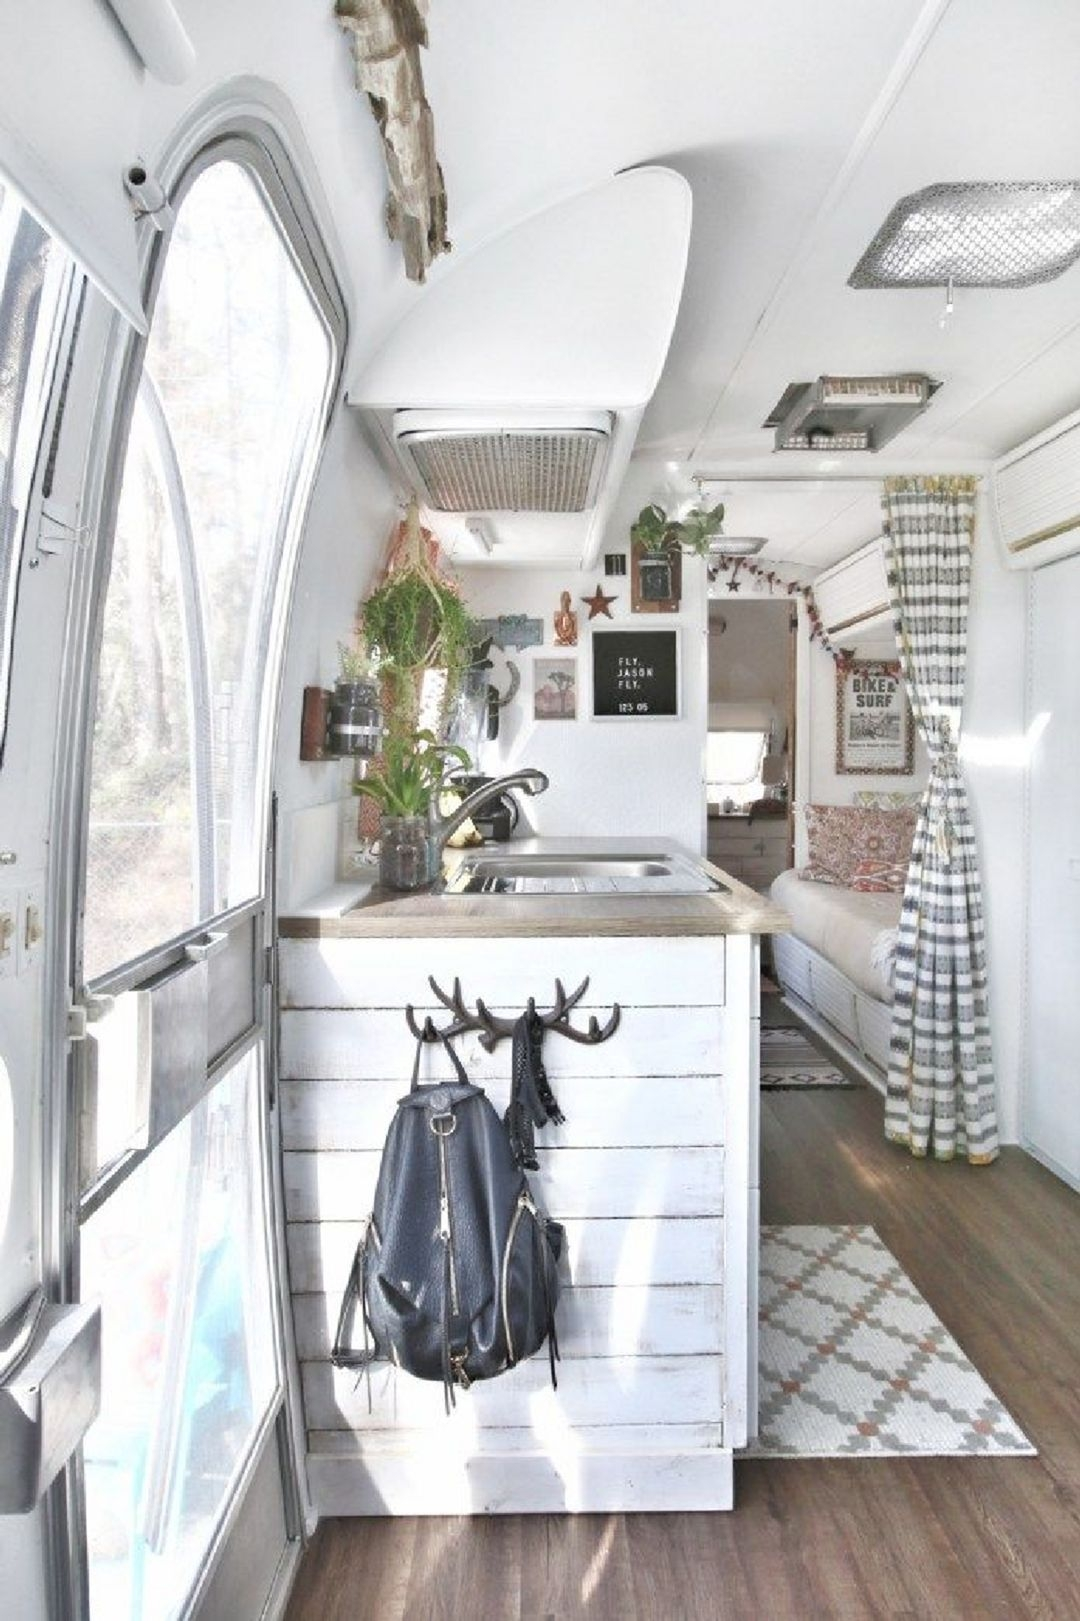 Awesome Rv Design Ideas That Looks Cool31